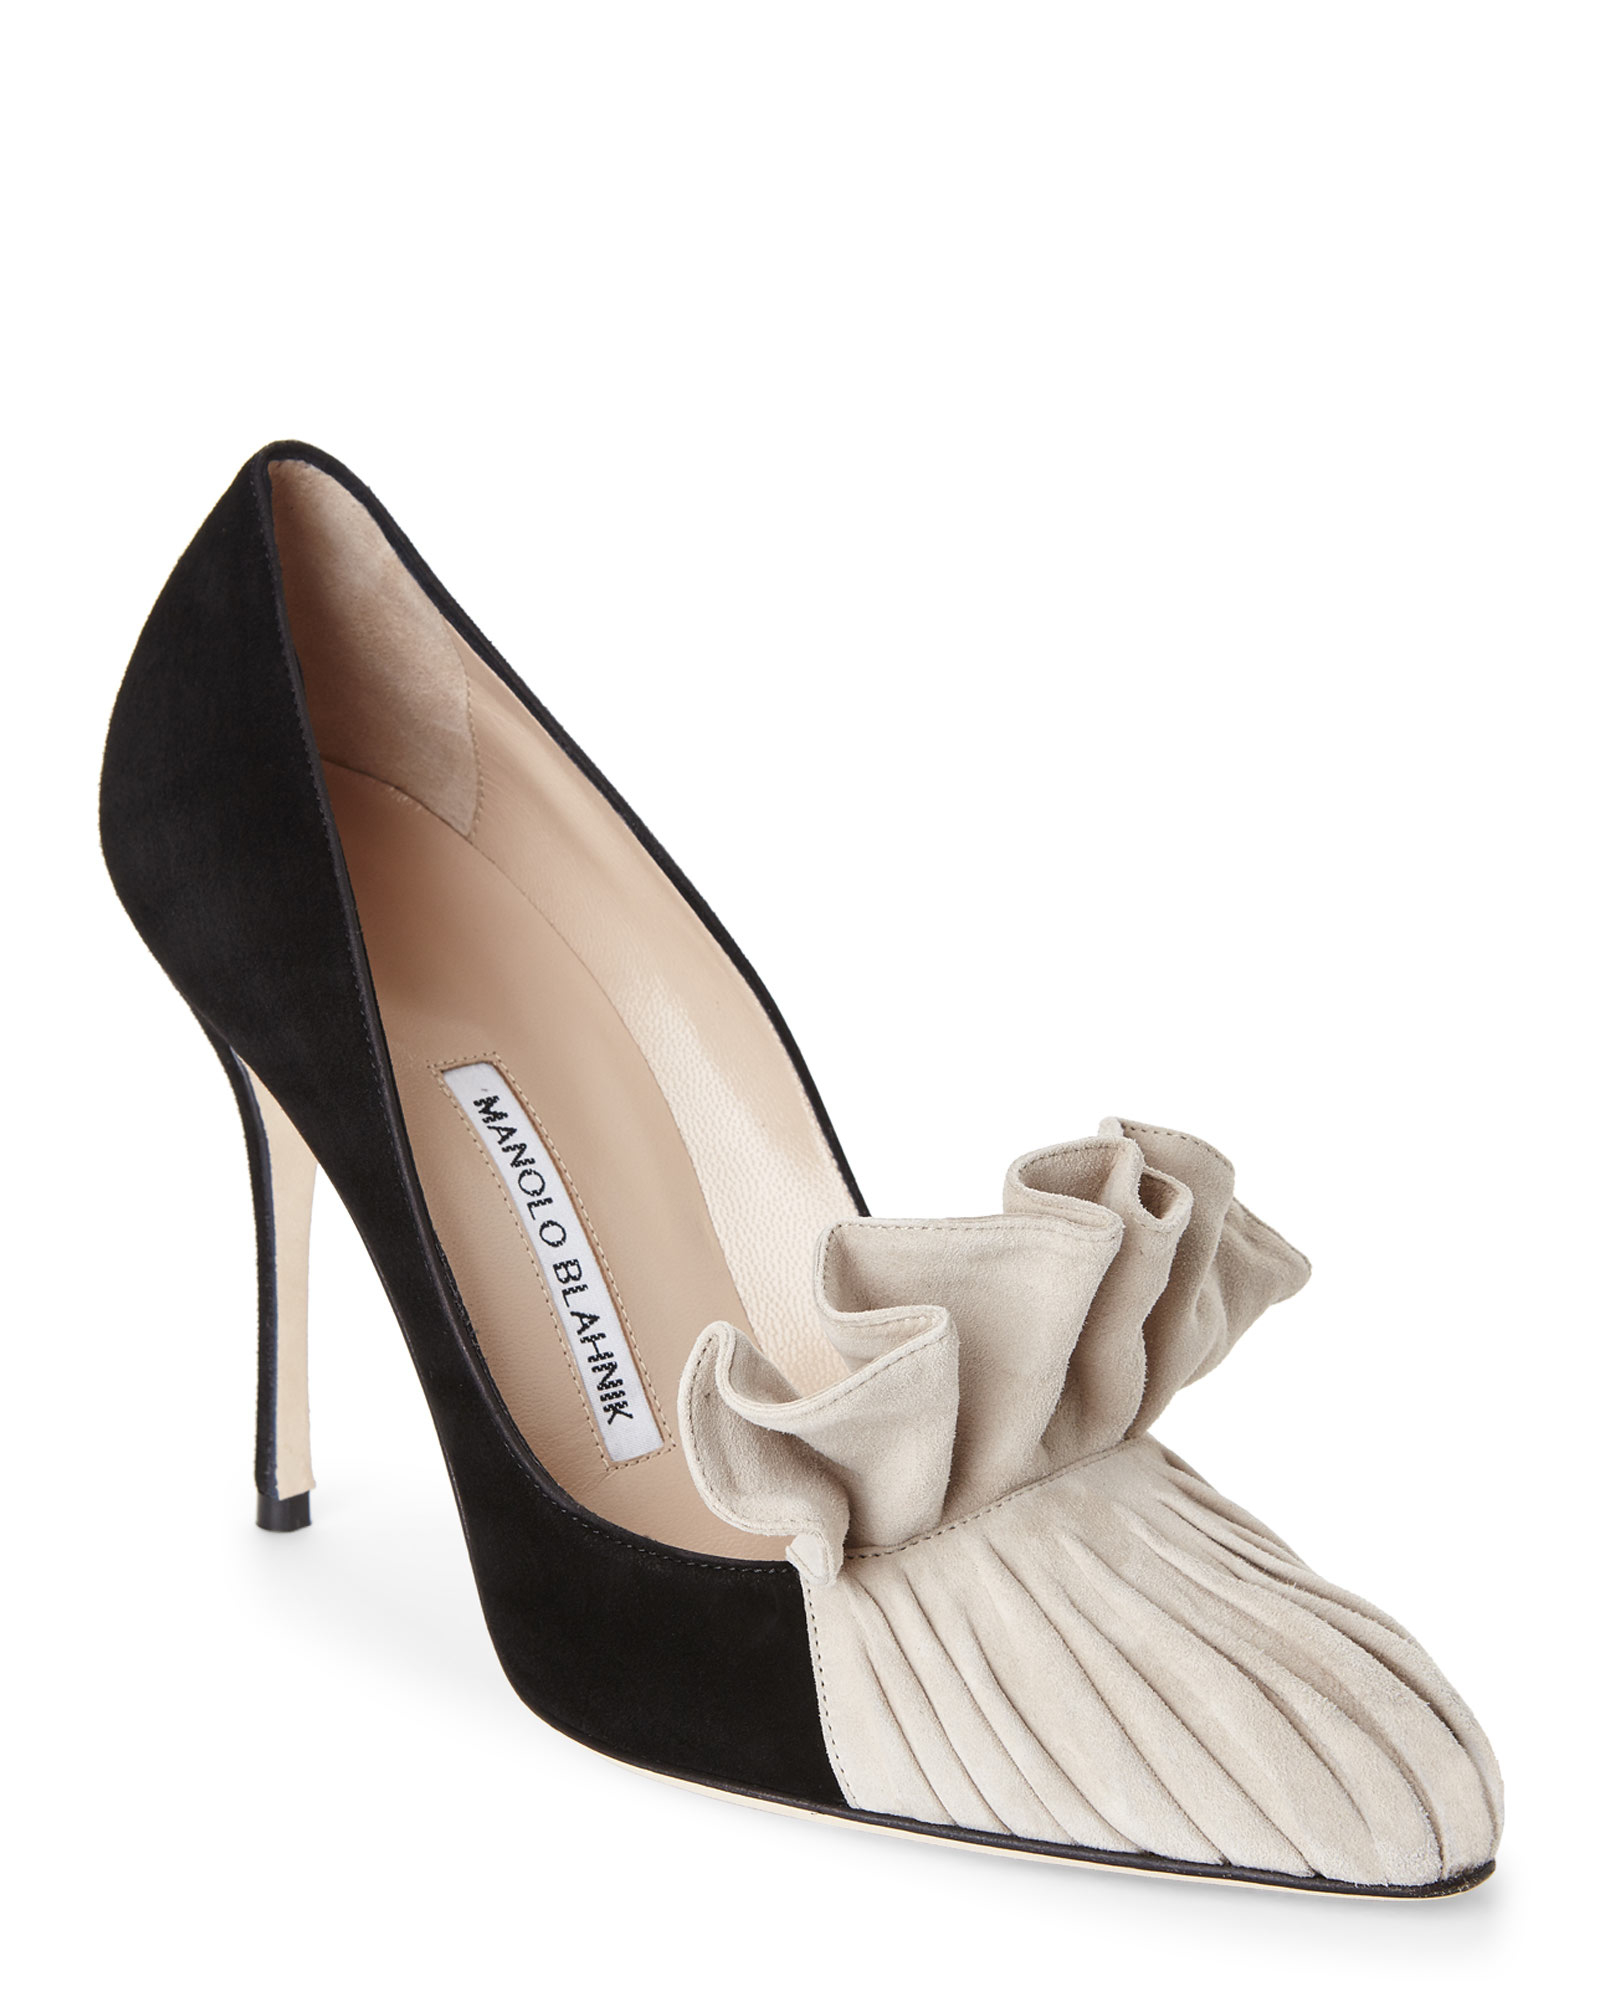 c44c0964195 Lyst - Manolo Blahnik Black   Beige Arleti Pumps in Black